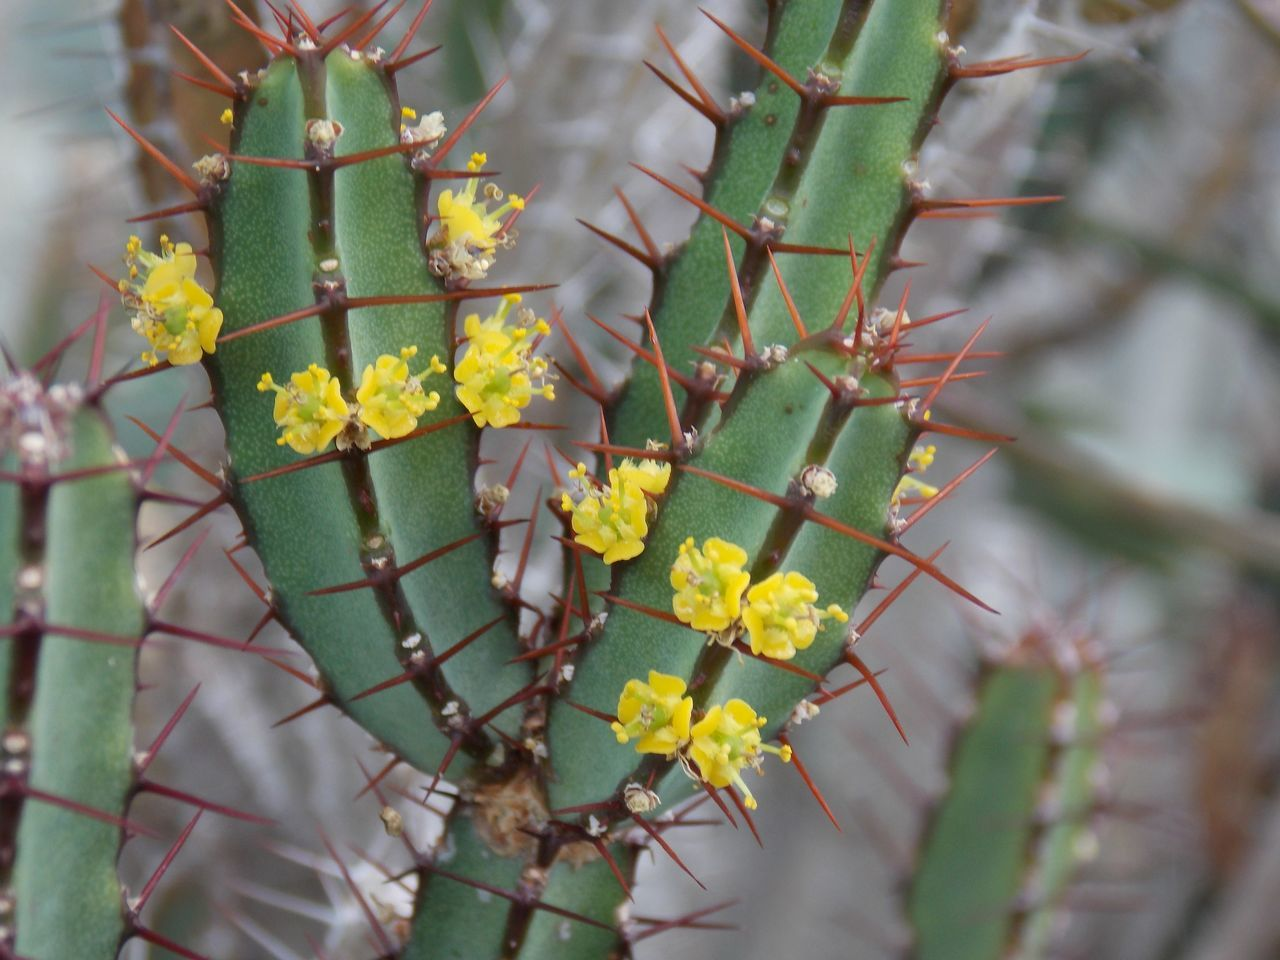 Close-Up Of Yellow Leaves On Cactus